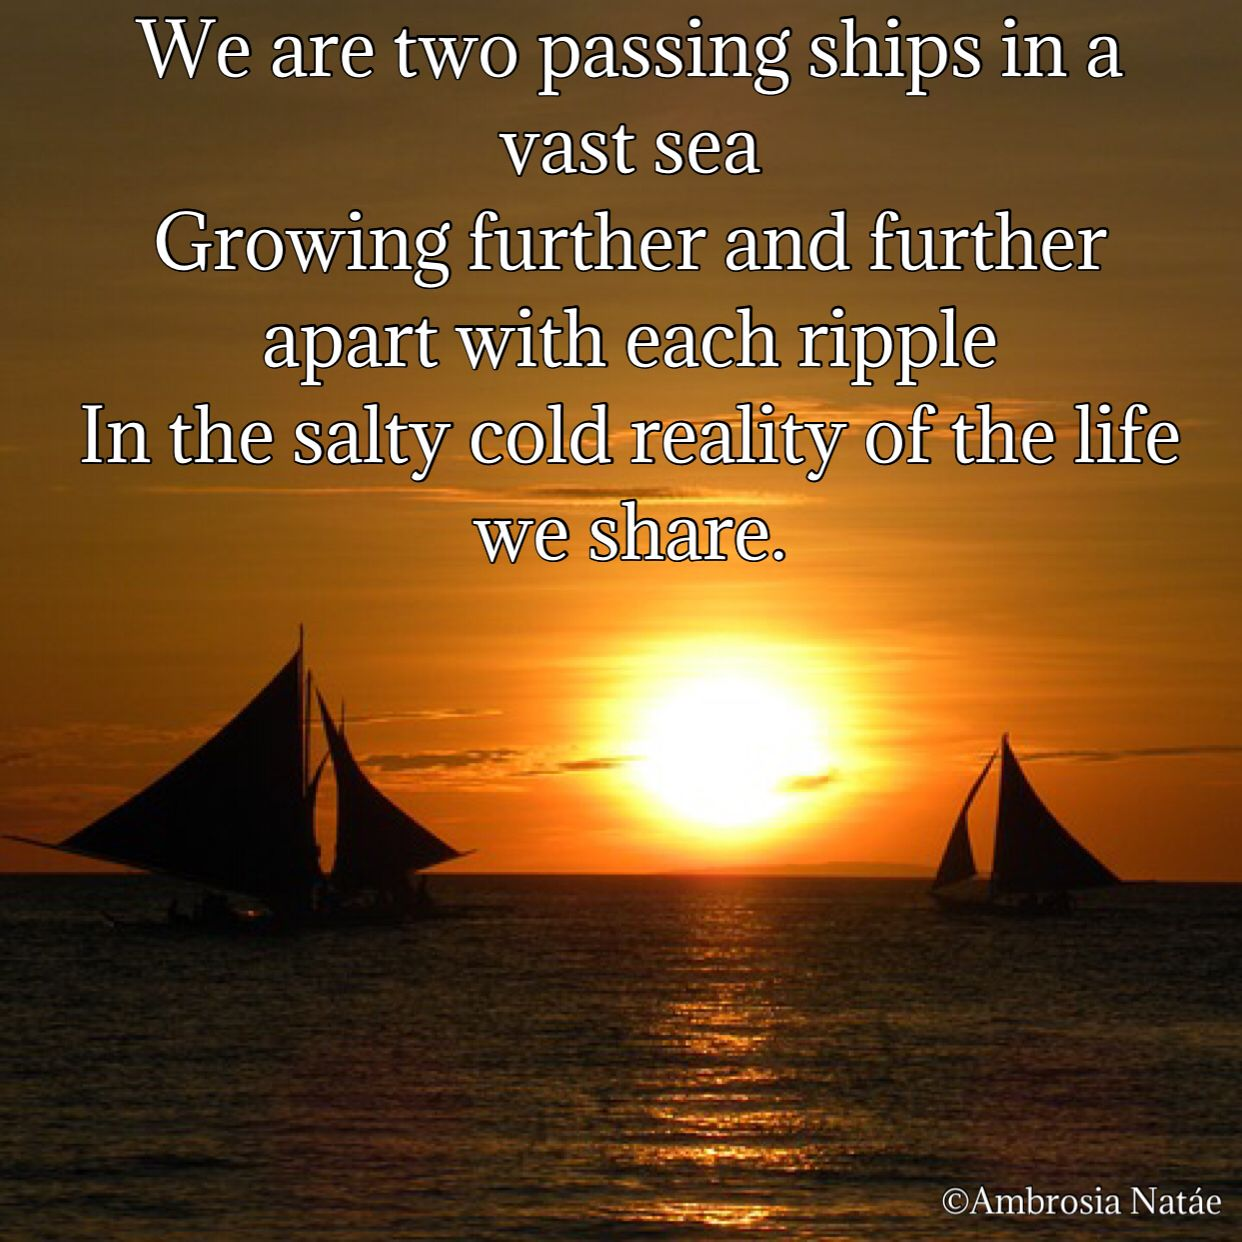 Poetry Prose Quotes sea ships growing apart sadness love